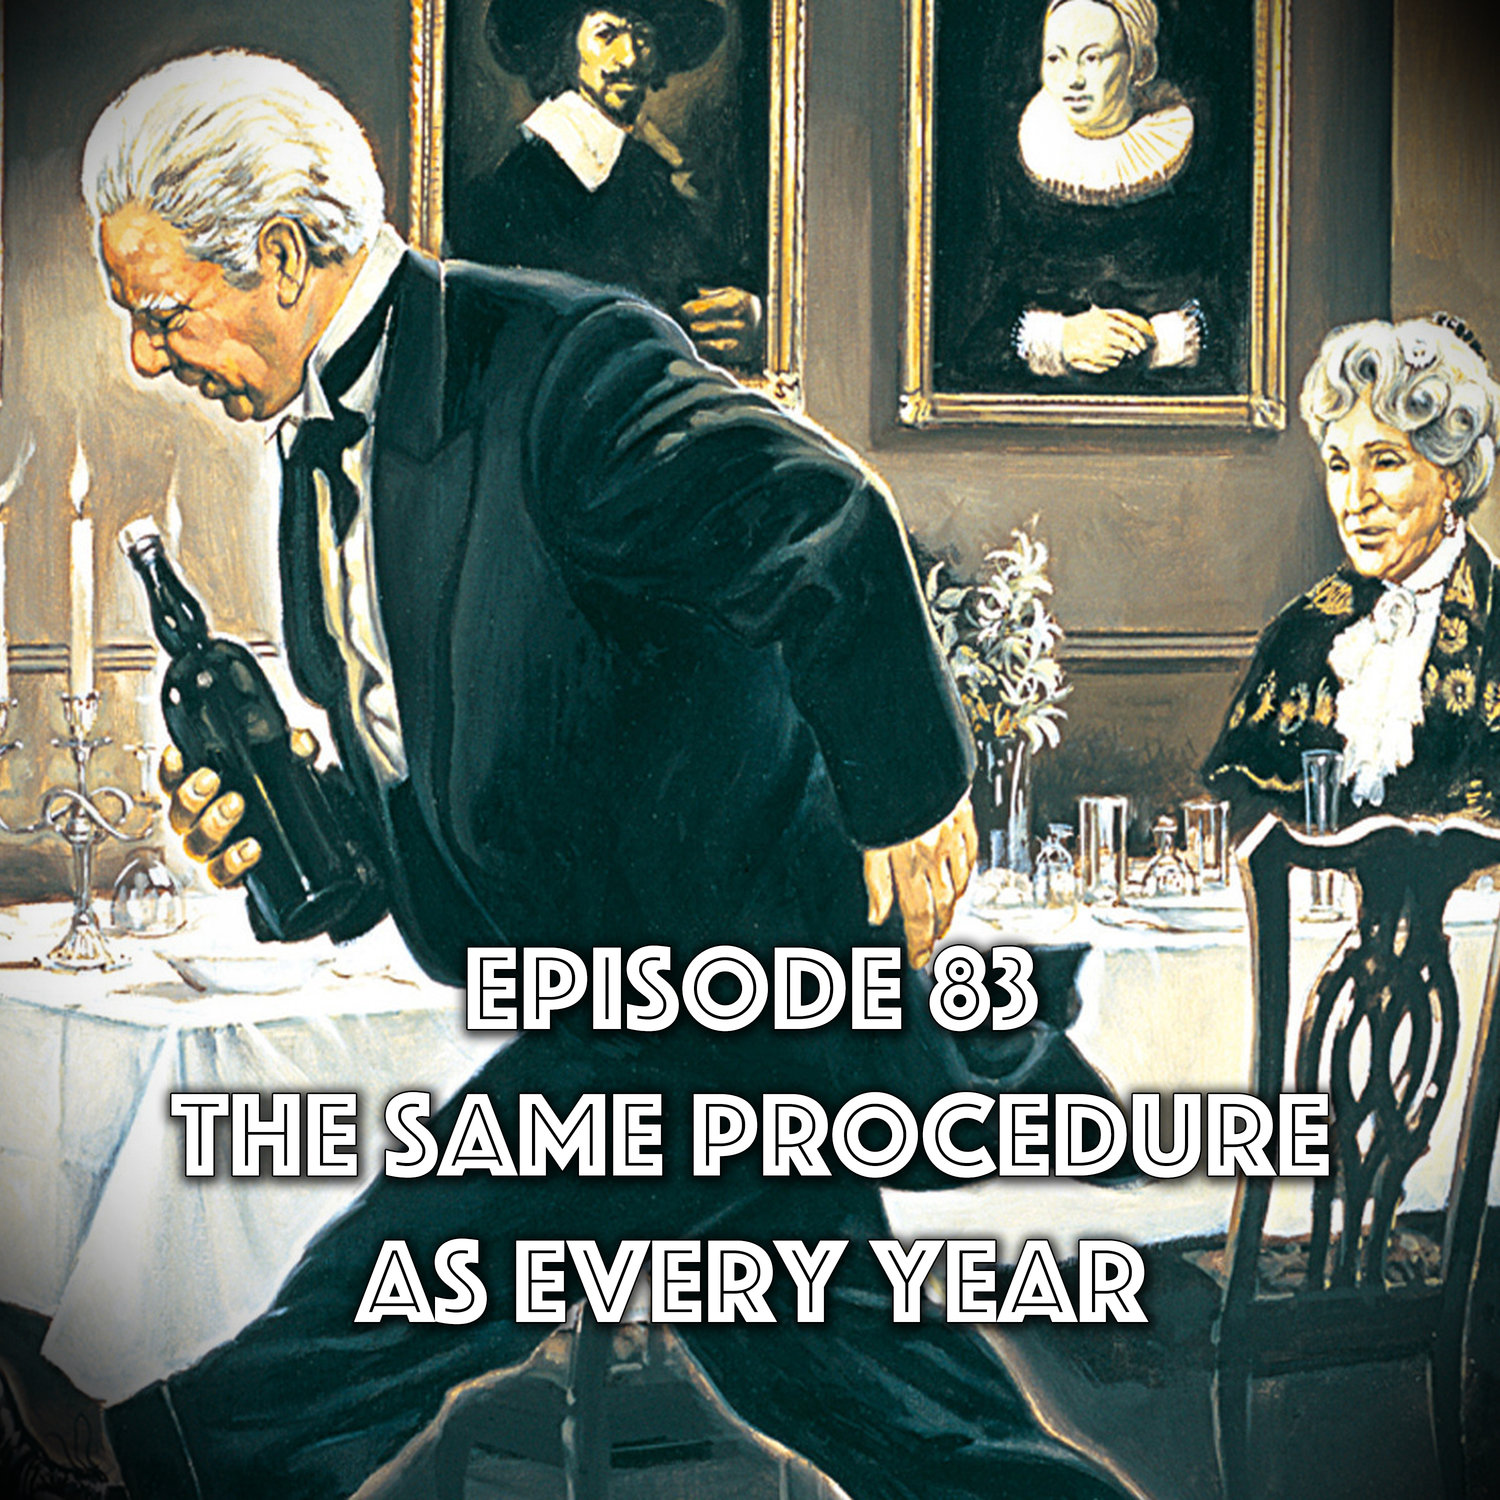 Episode 83: The Same Procedure As Every Year